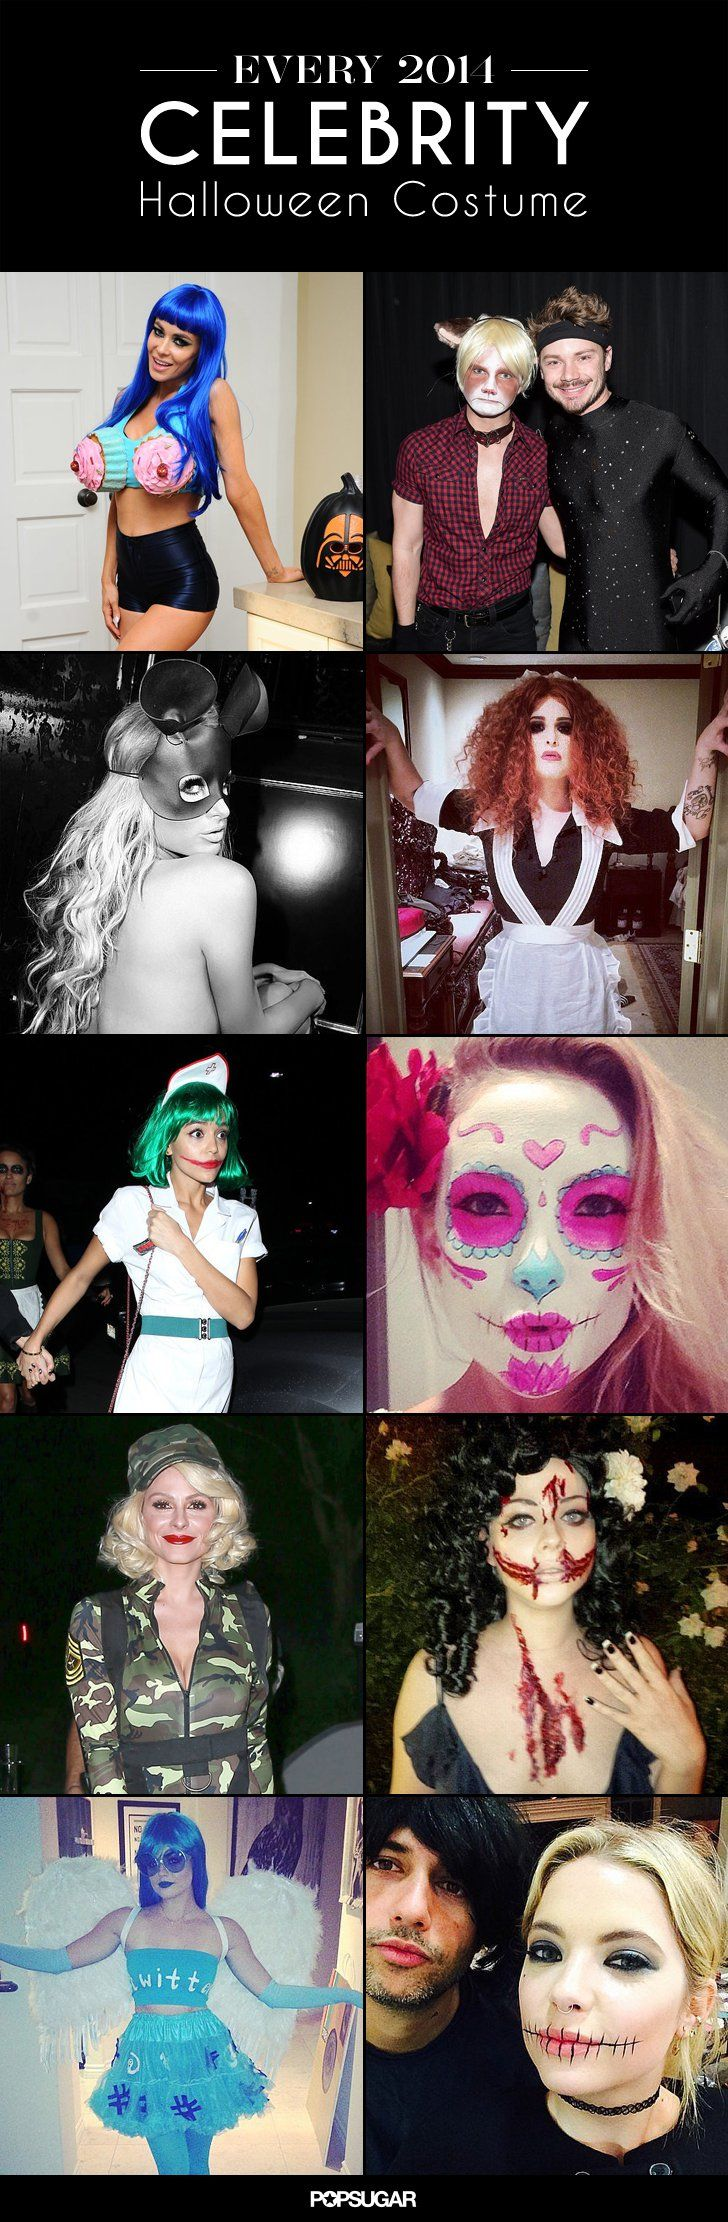 Pin for Later: Look Back at All of Last Year's Memorable Celebrity Halloween Costumes!